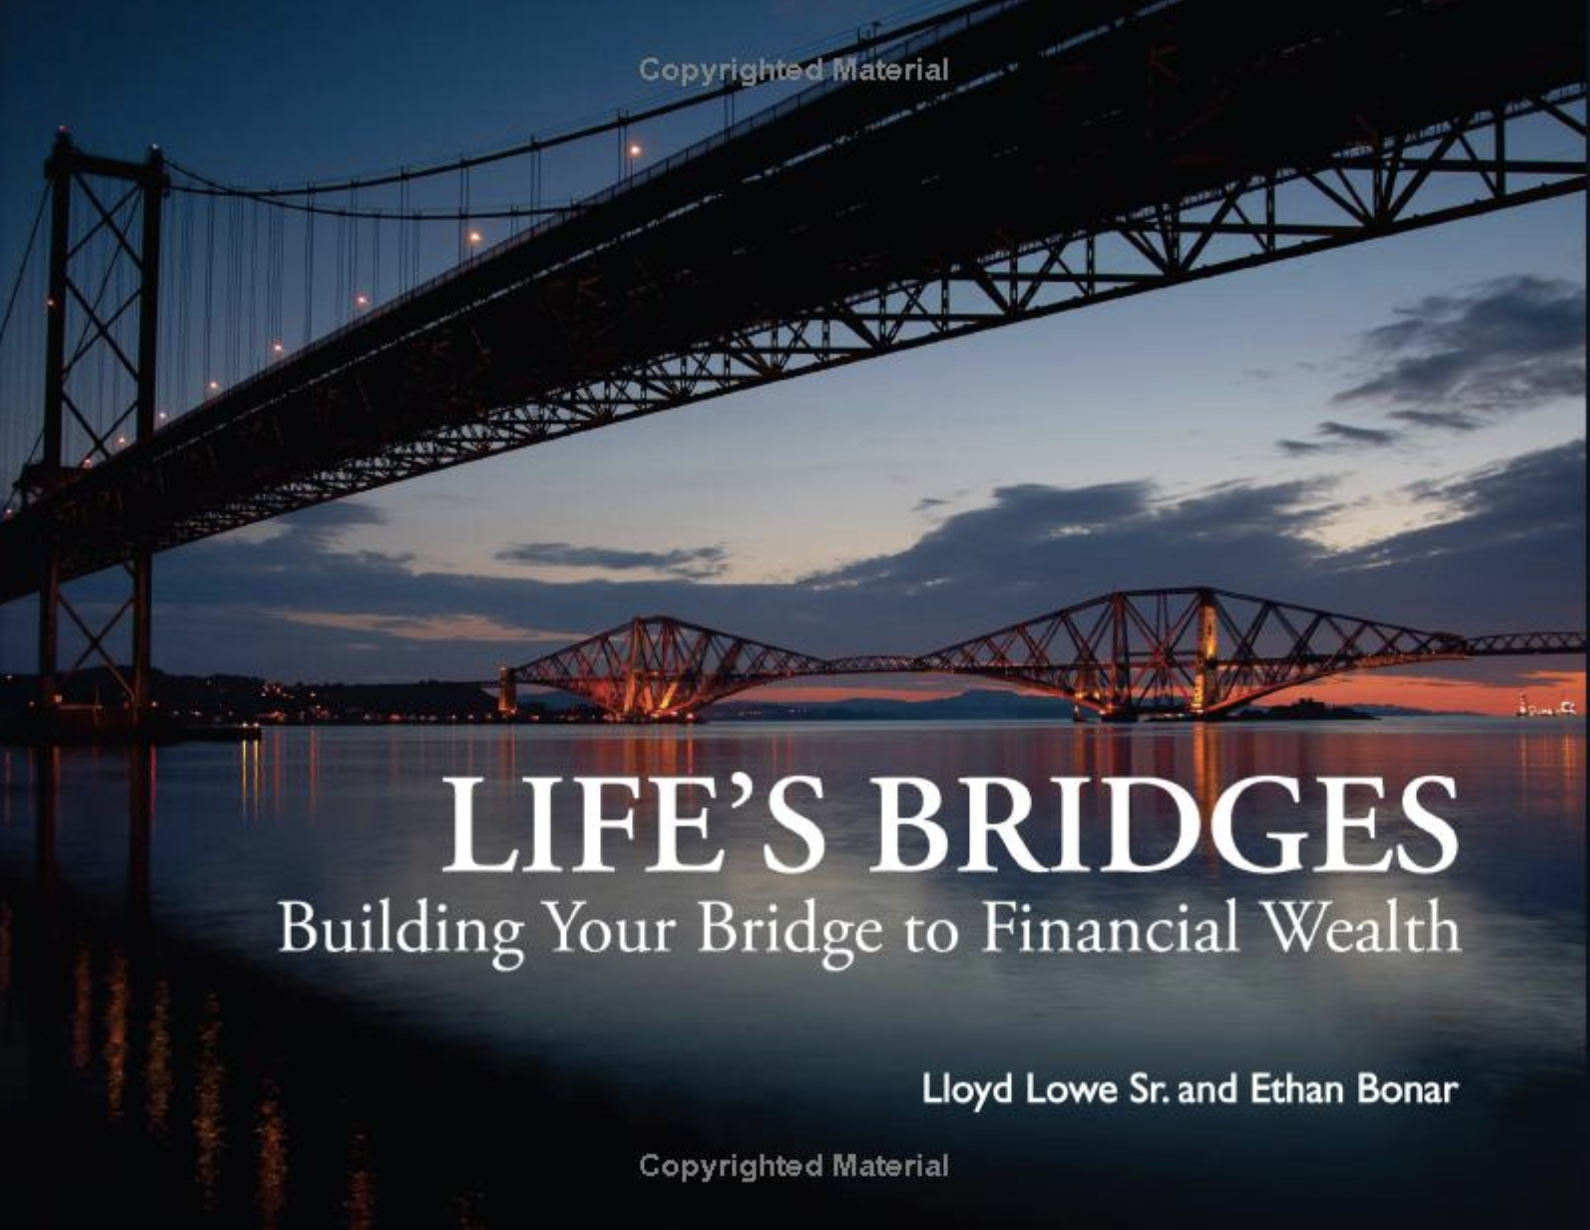 picture of Life's Bridges Book